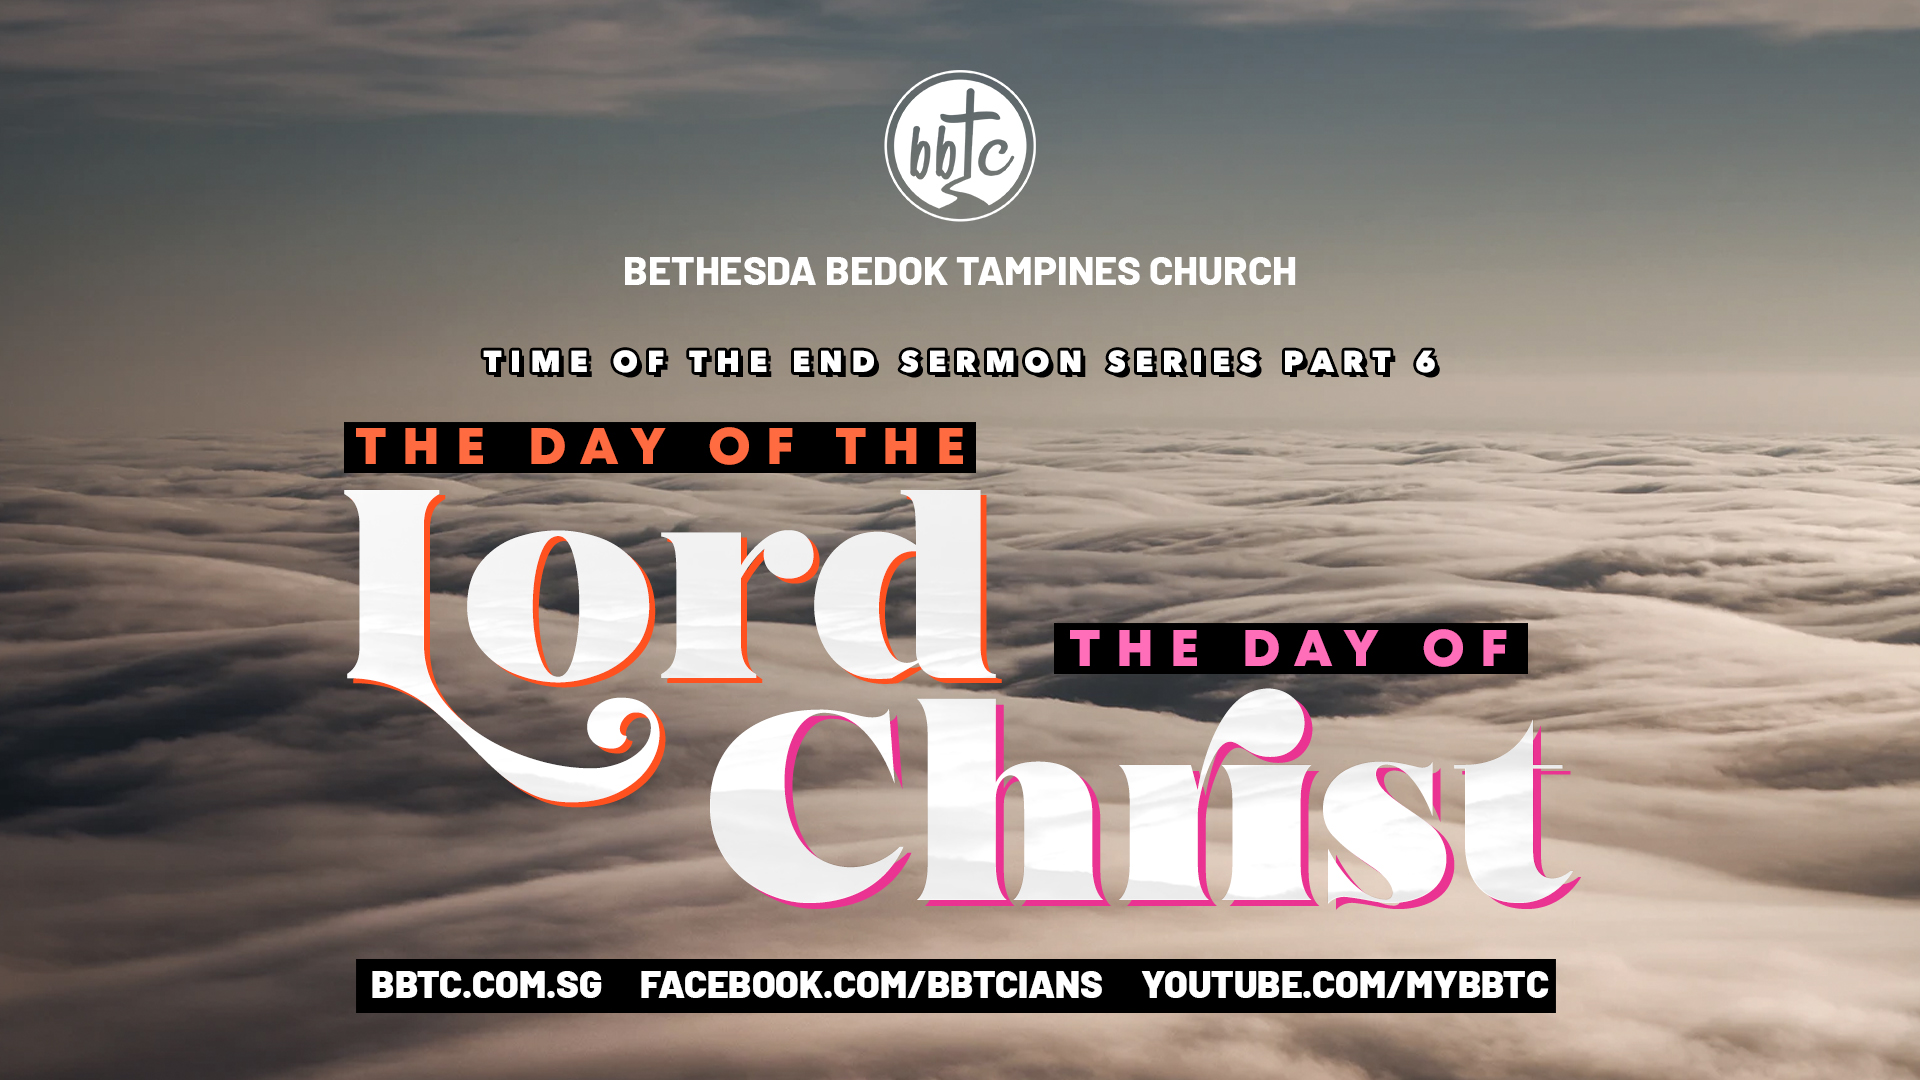 THE DAY OF THE LORD & THE DAY OF CHRIST